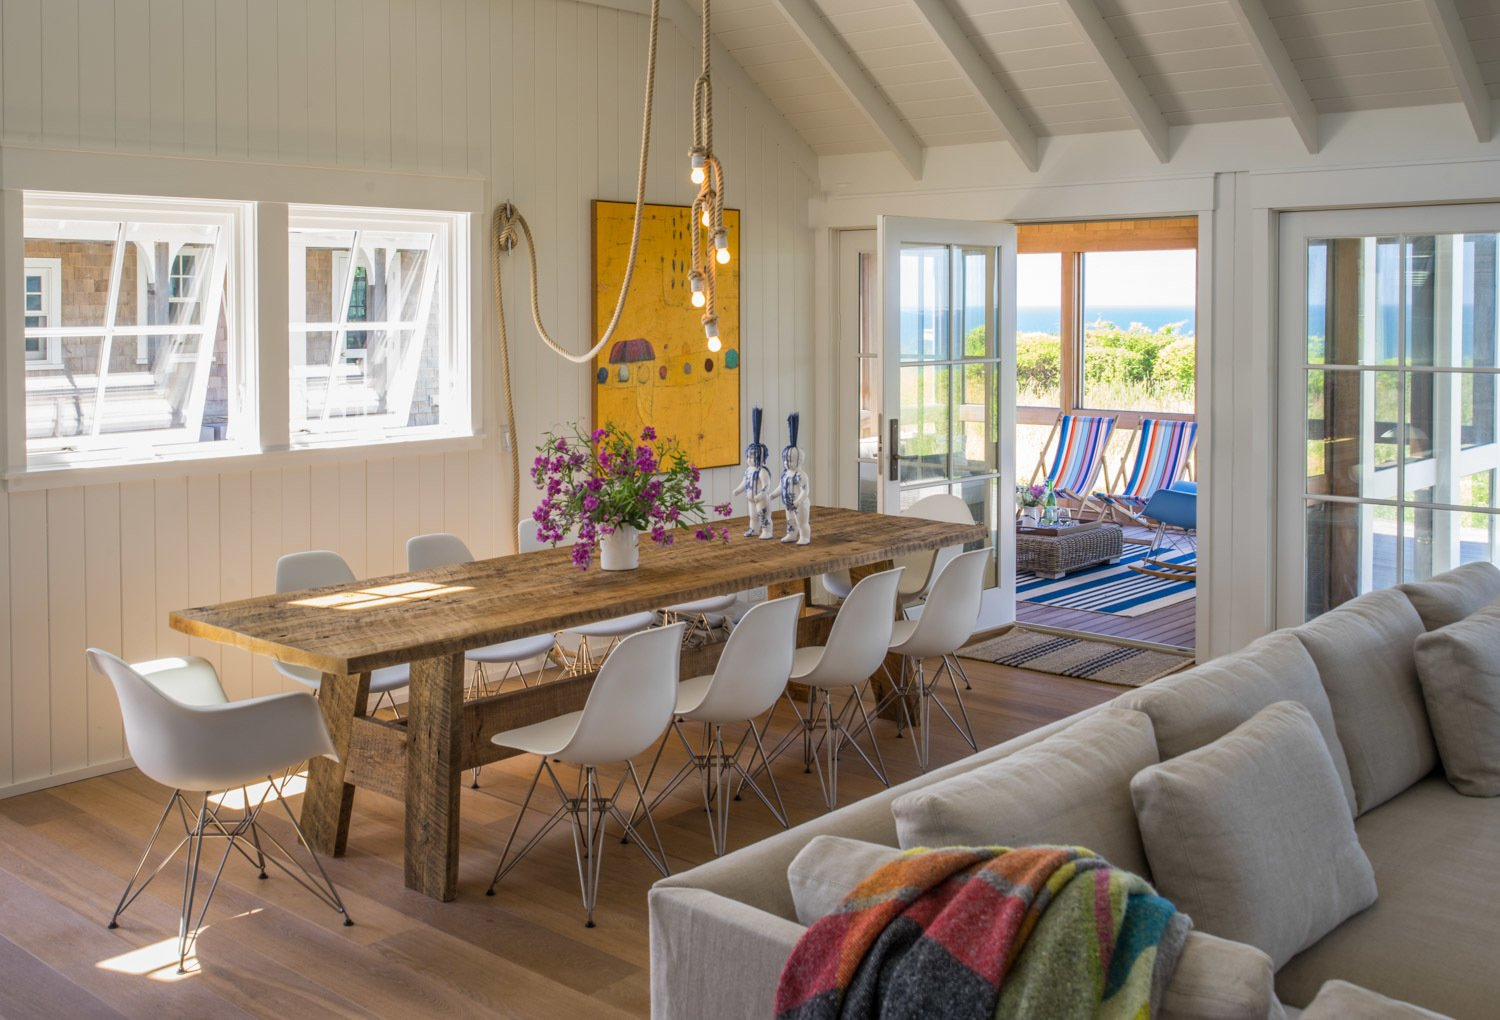 The dining area is furnished with a 10 foot long, rough hewn recycled timber table and contrasting classic Eames chairs.  Corkin House